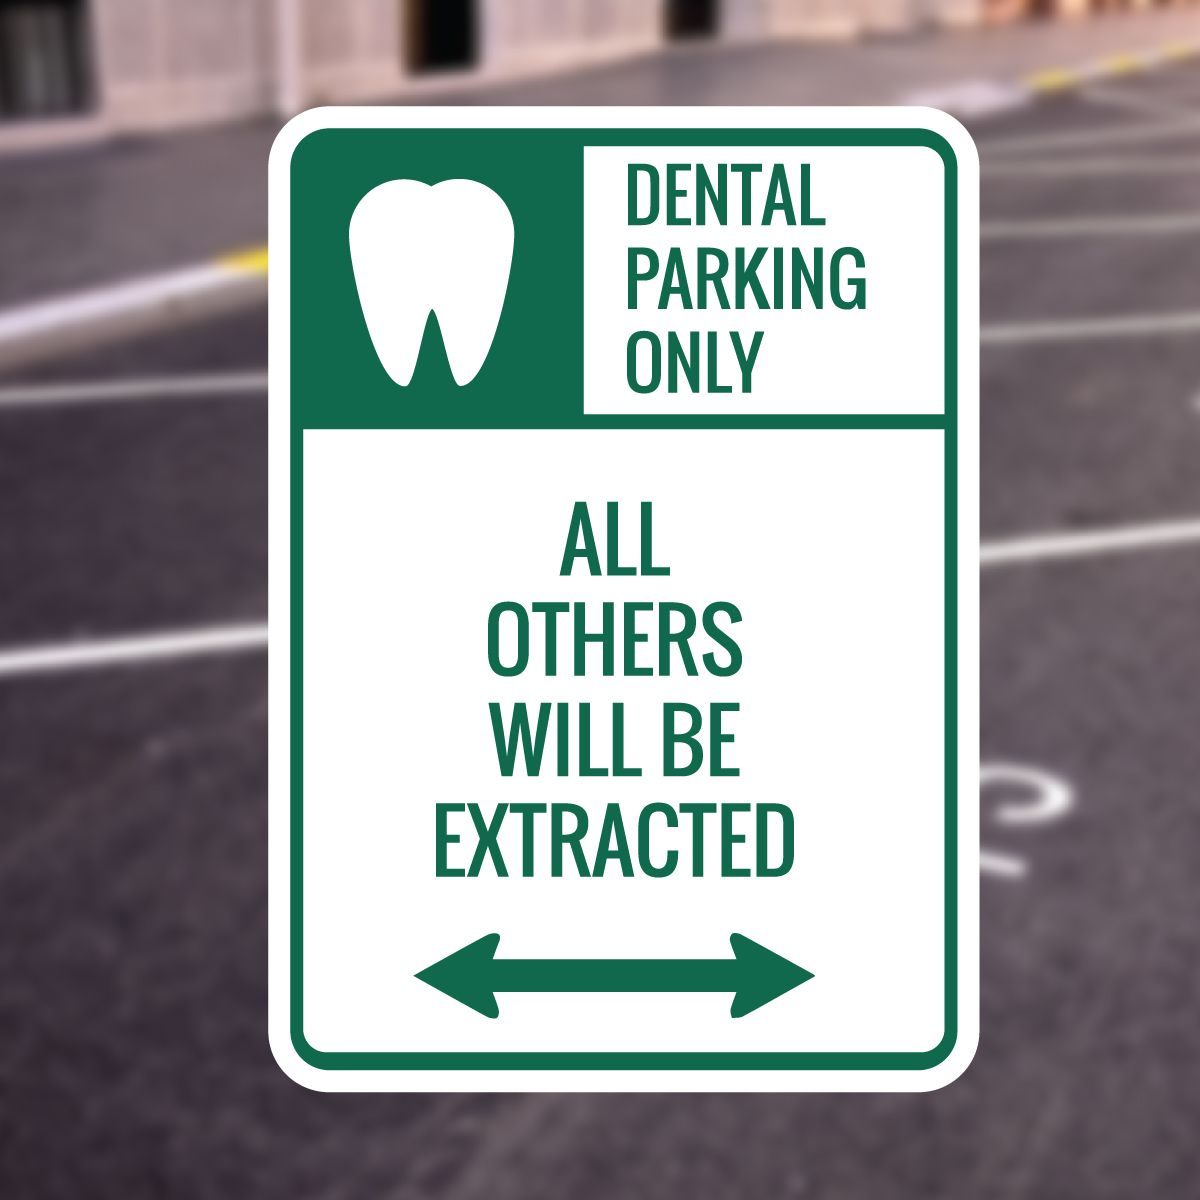 PARKING CAN BE A HASSLE, but we do our best to make sure